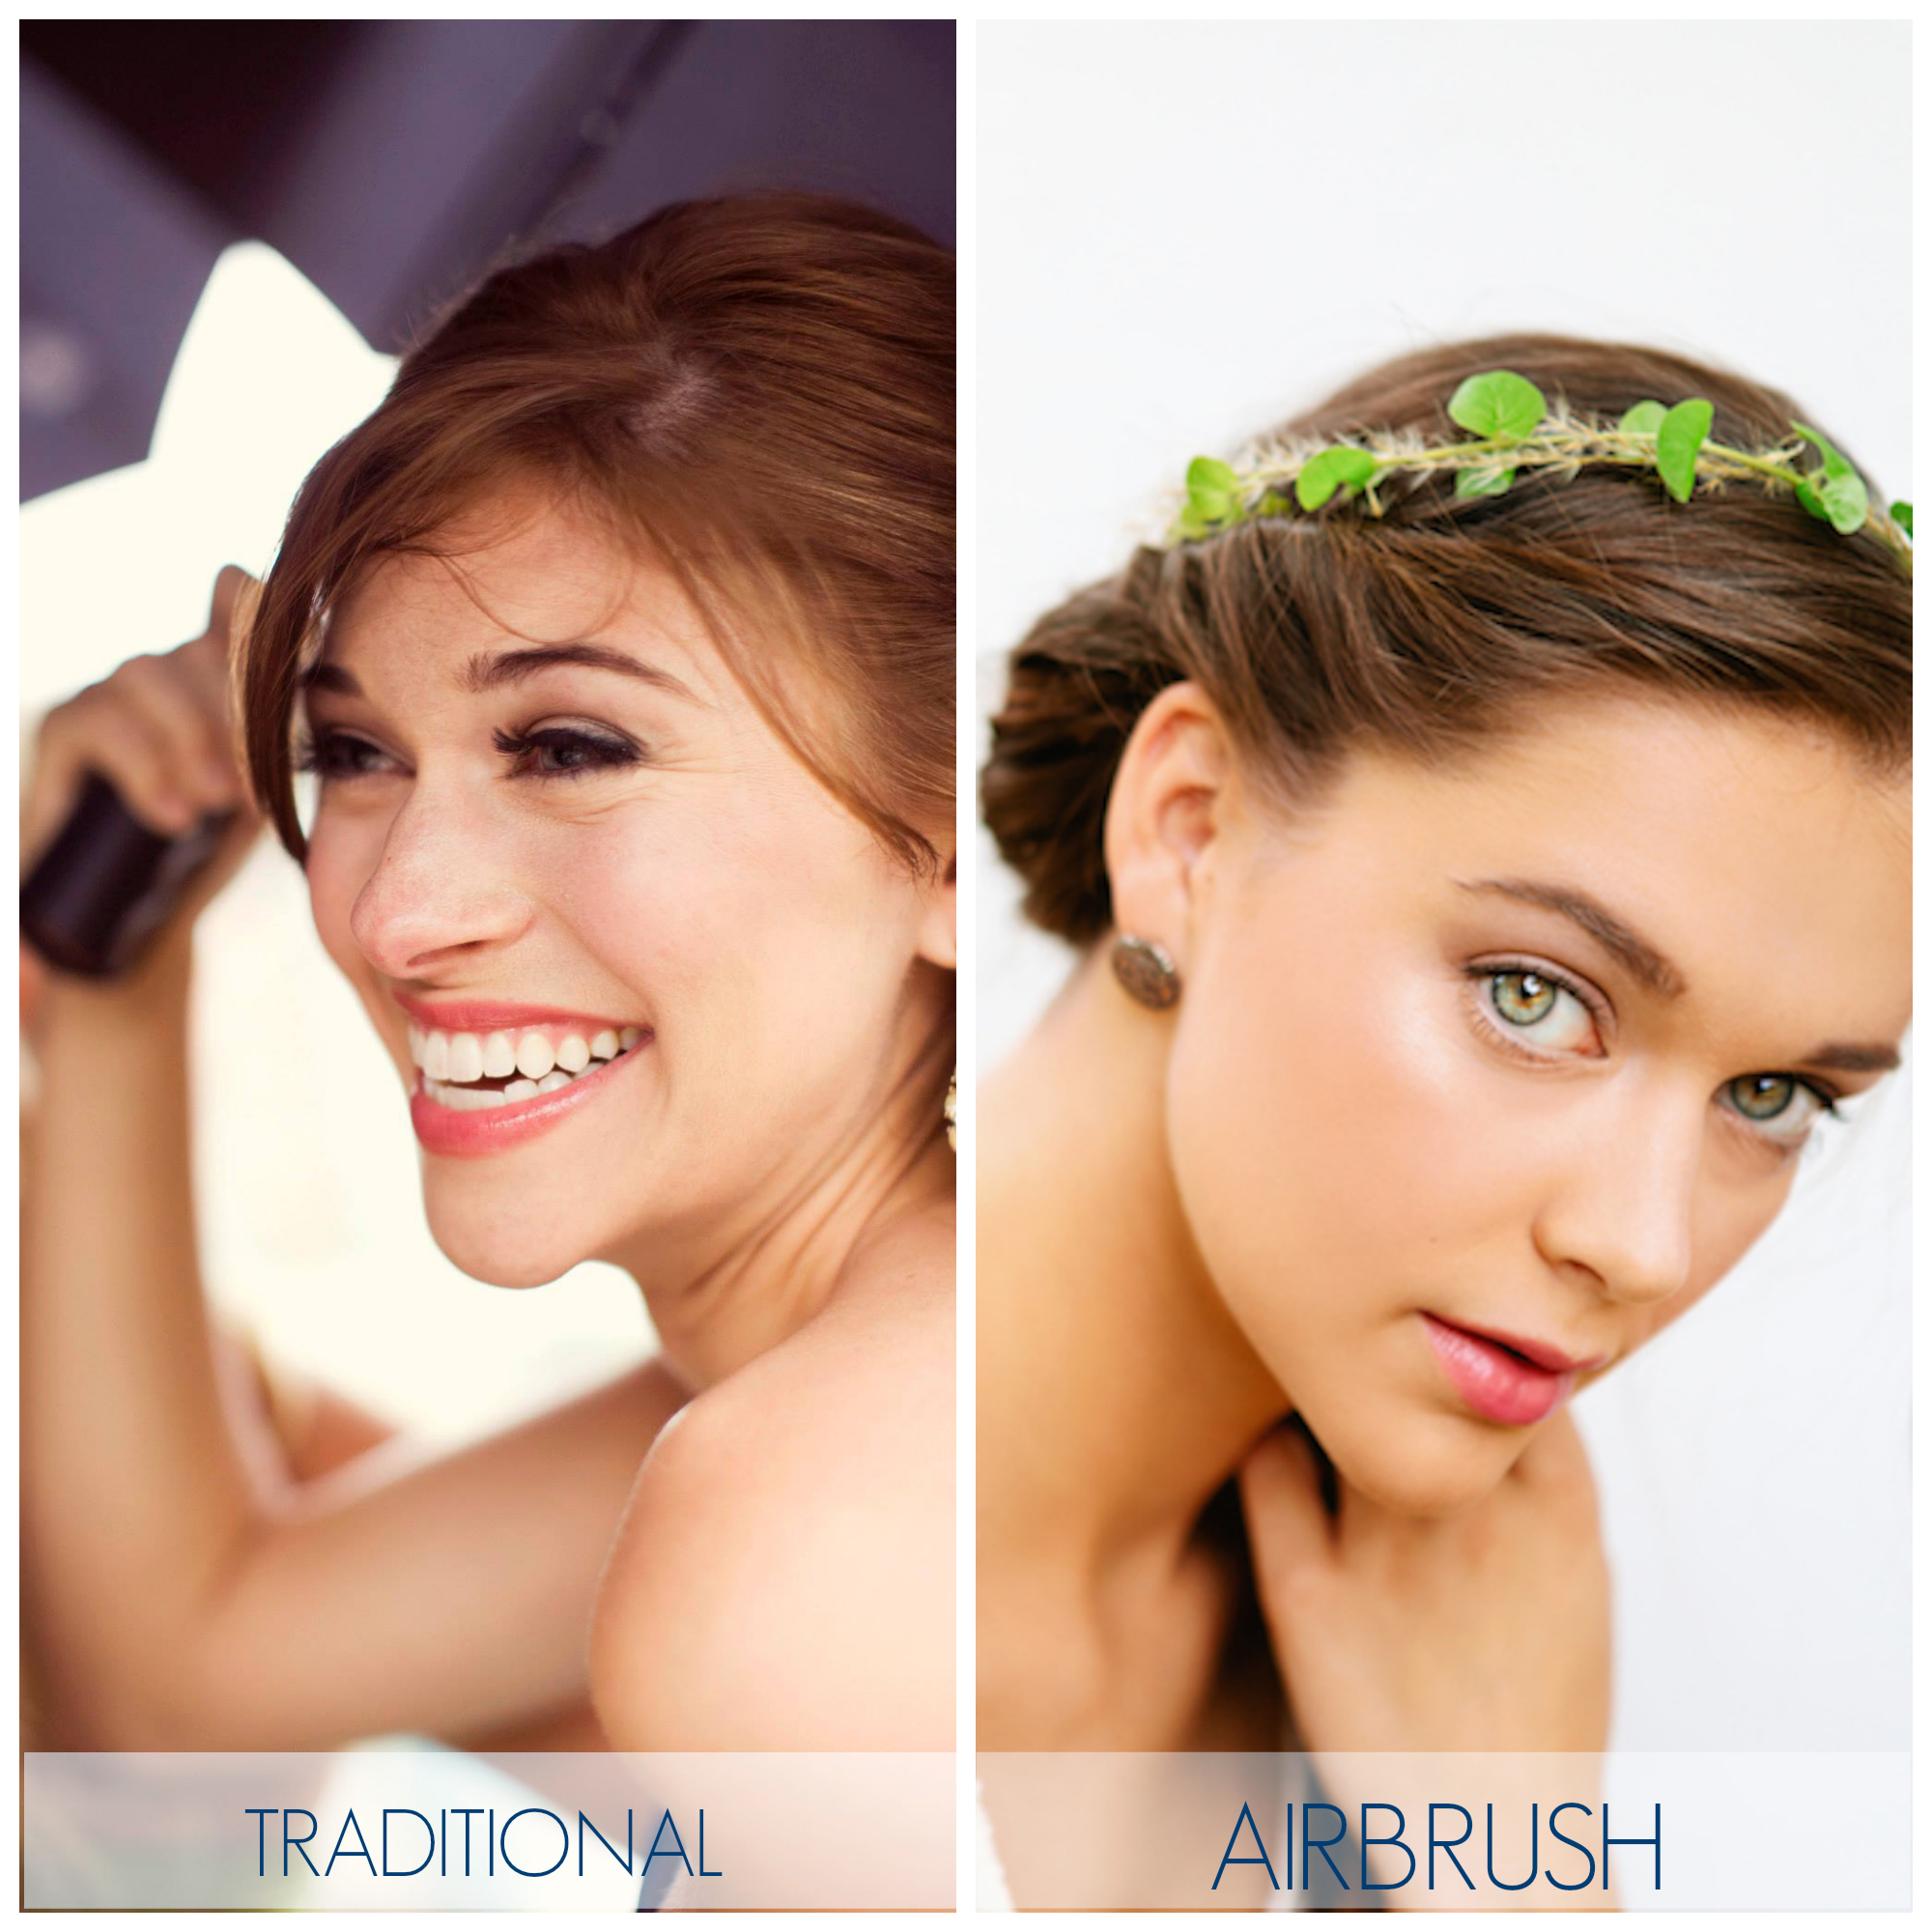 Airbrush Bridal Makeup Vs Regular Makeup – What Are The Differences